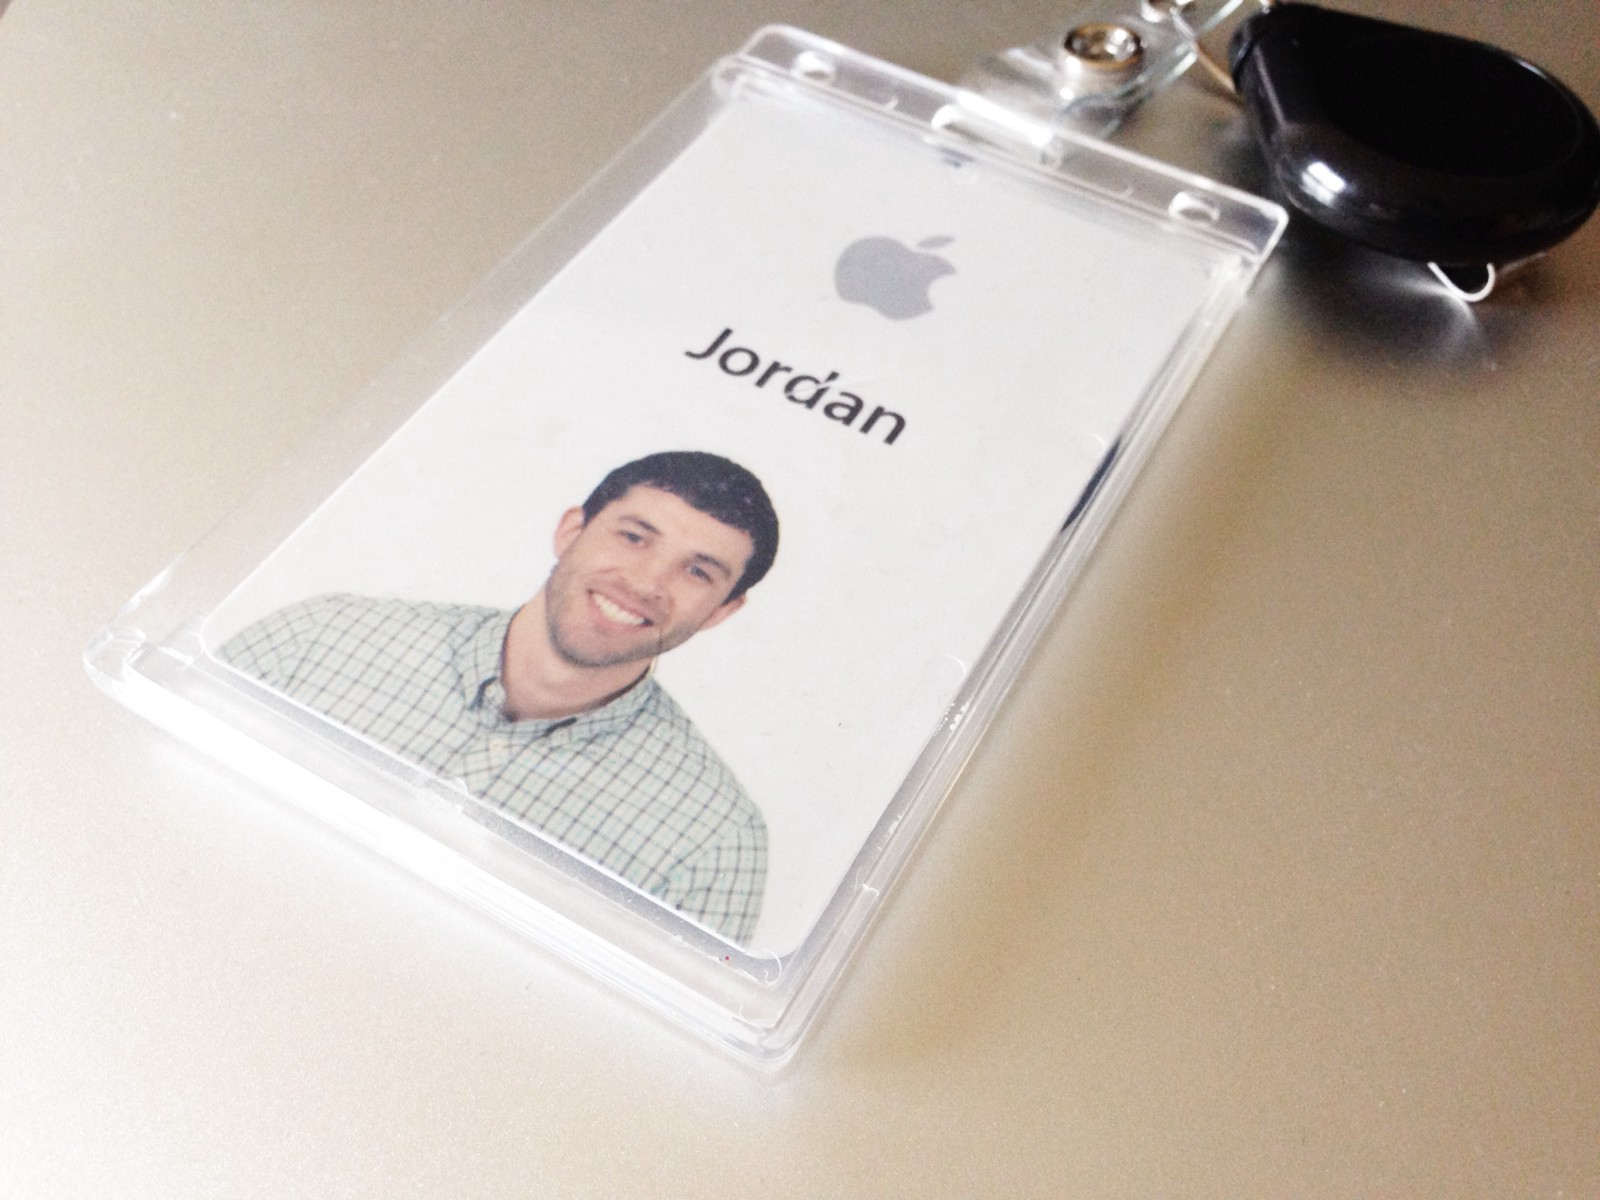 I wanted to work at Apple really bad, and now not so much.